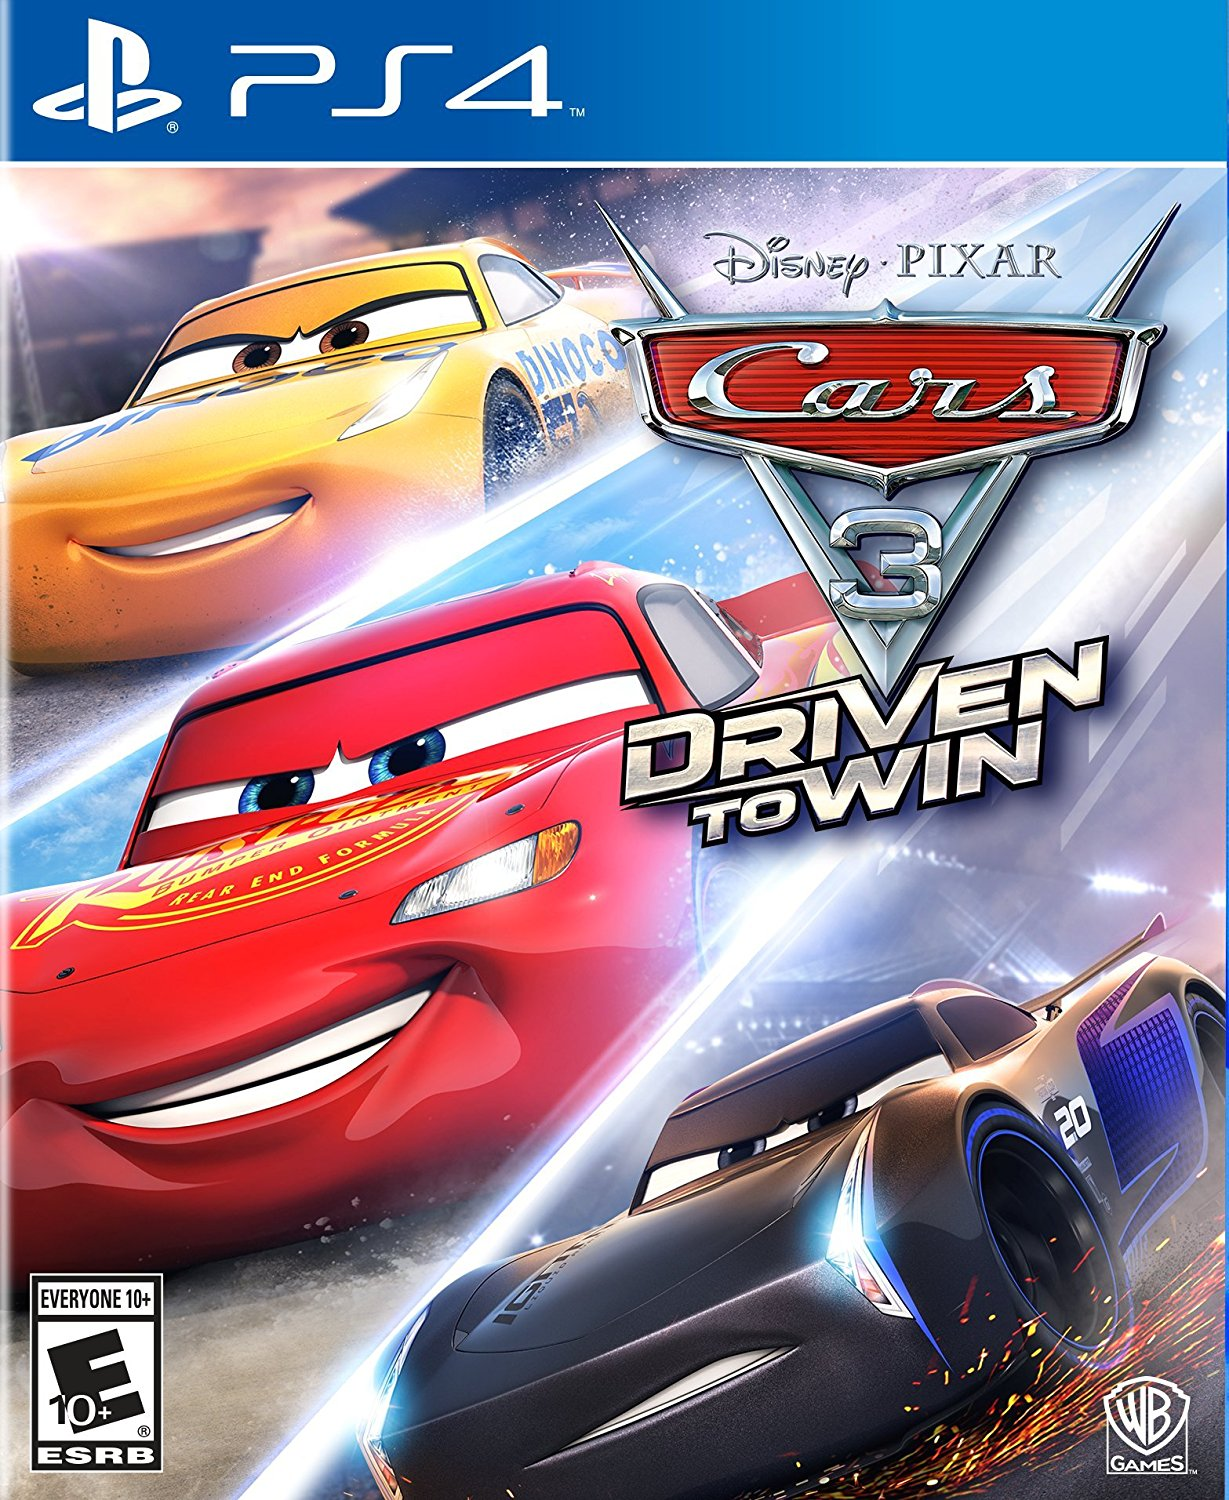 new games cars 3 driven to win ps4 ps3 xbox one xbox 360 switch wii u the. Black Bedroom Furniture Sets. Home Design Ideas